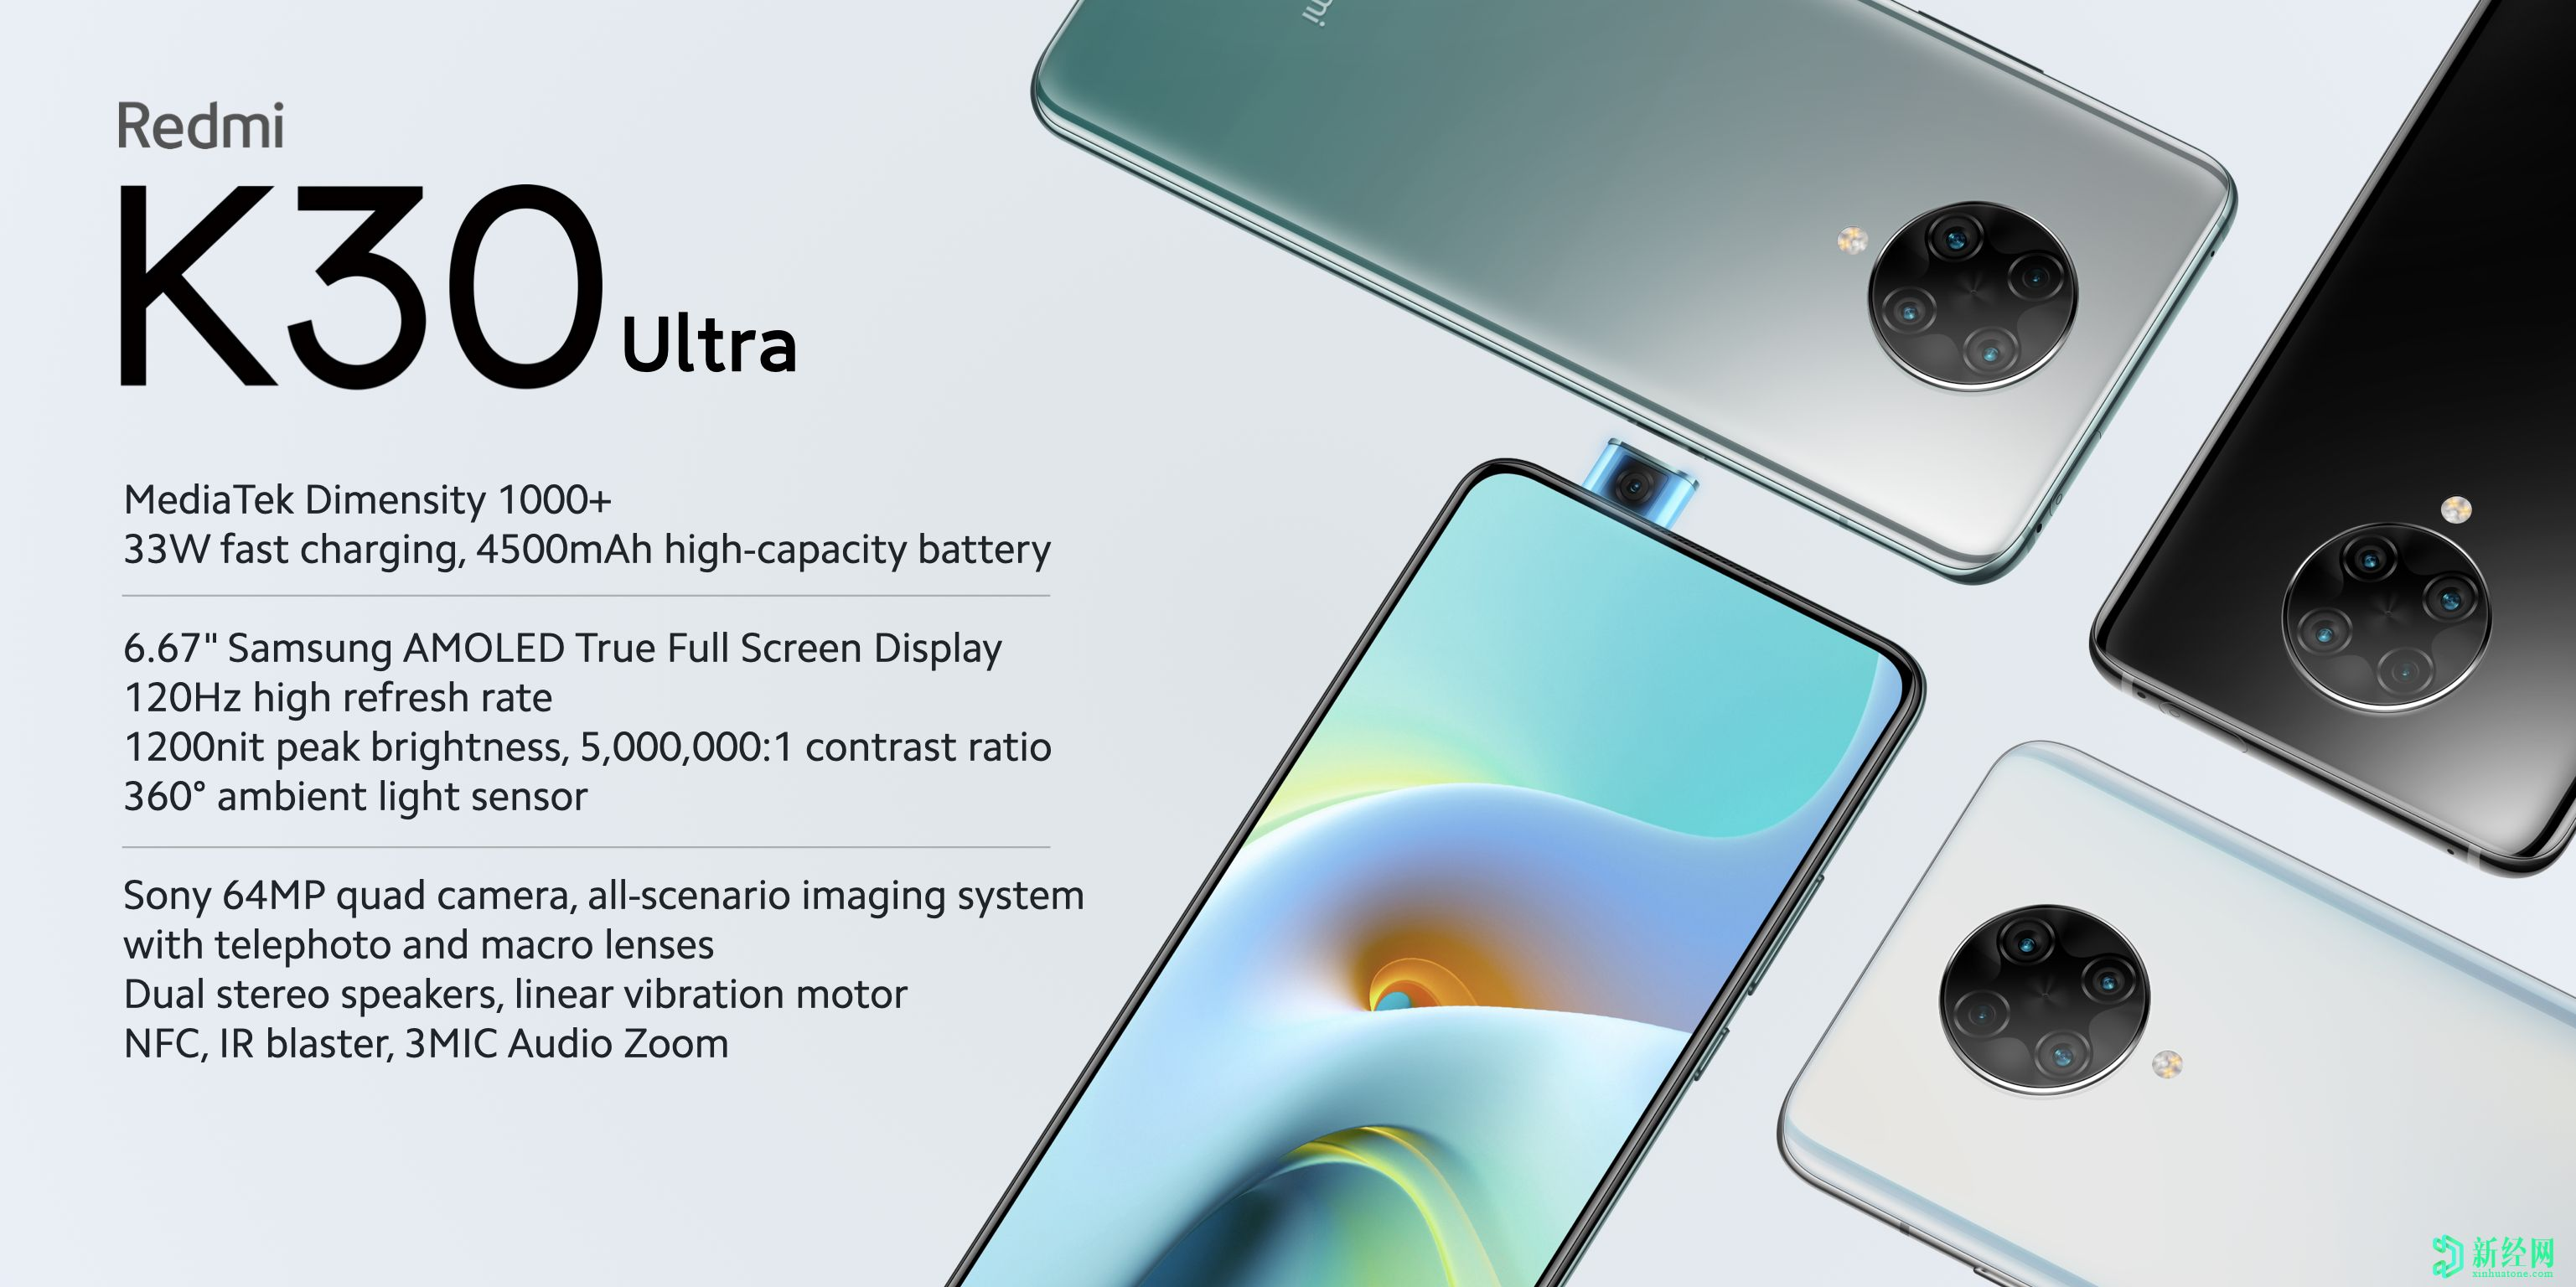 Redmi K30 Ultra,具有6.67英寸AMOLED,120Hz刷新率,Dimensity 1000+ SoC官方!